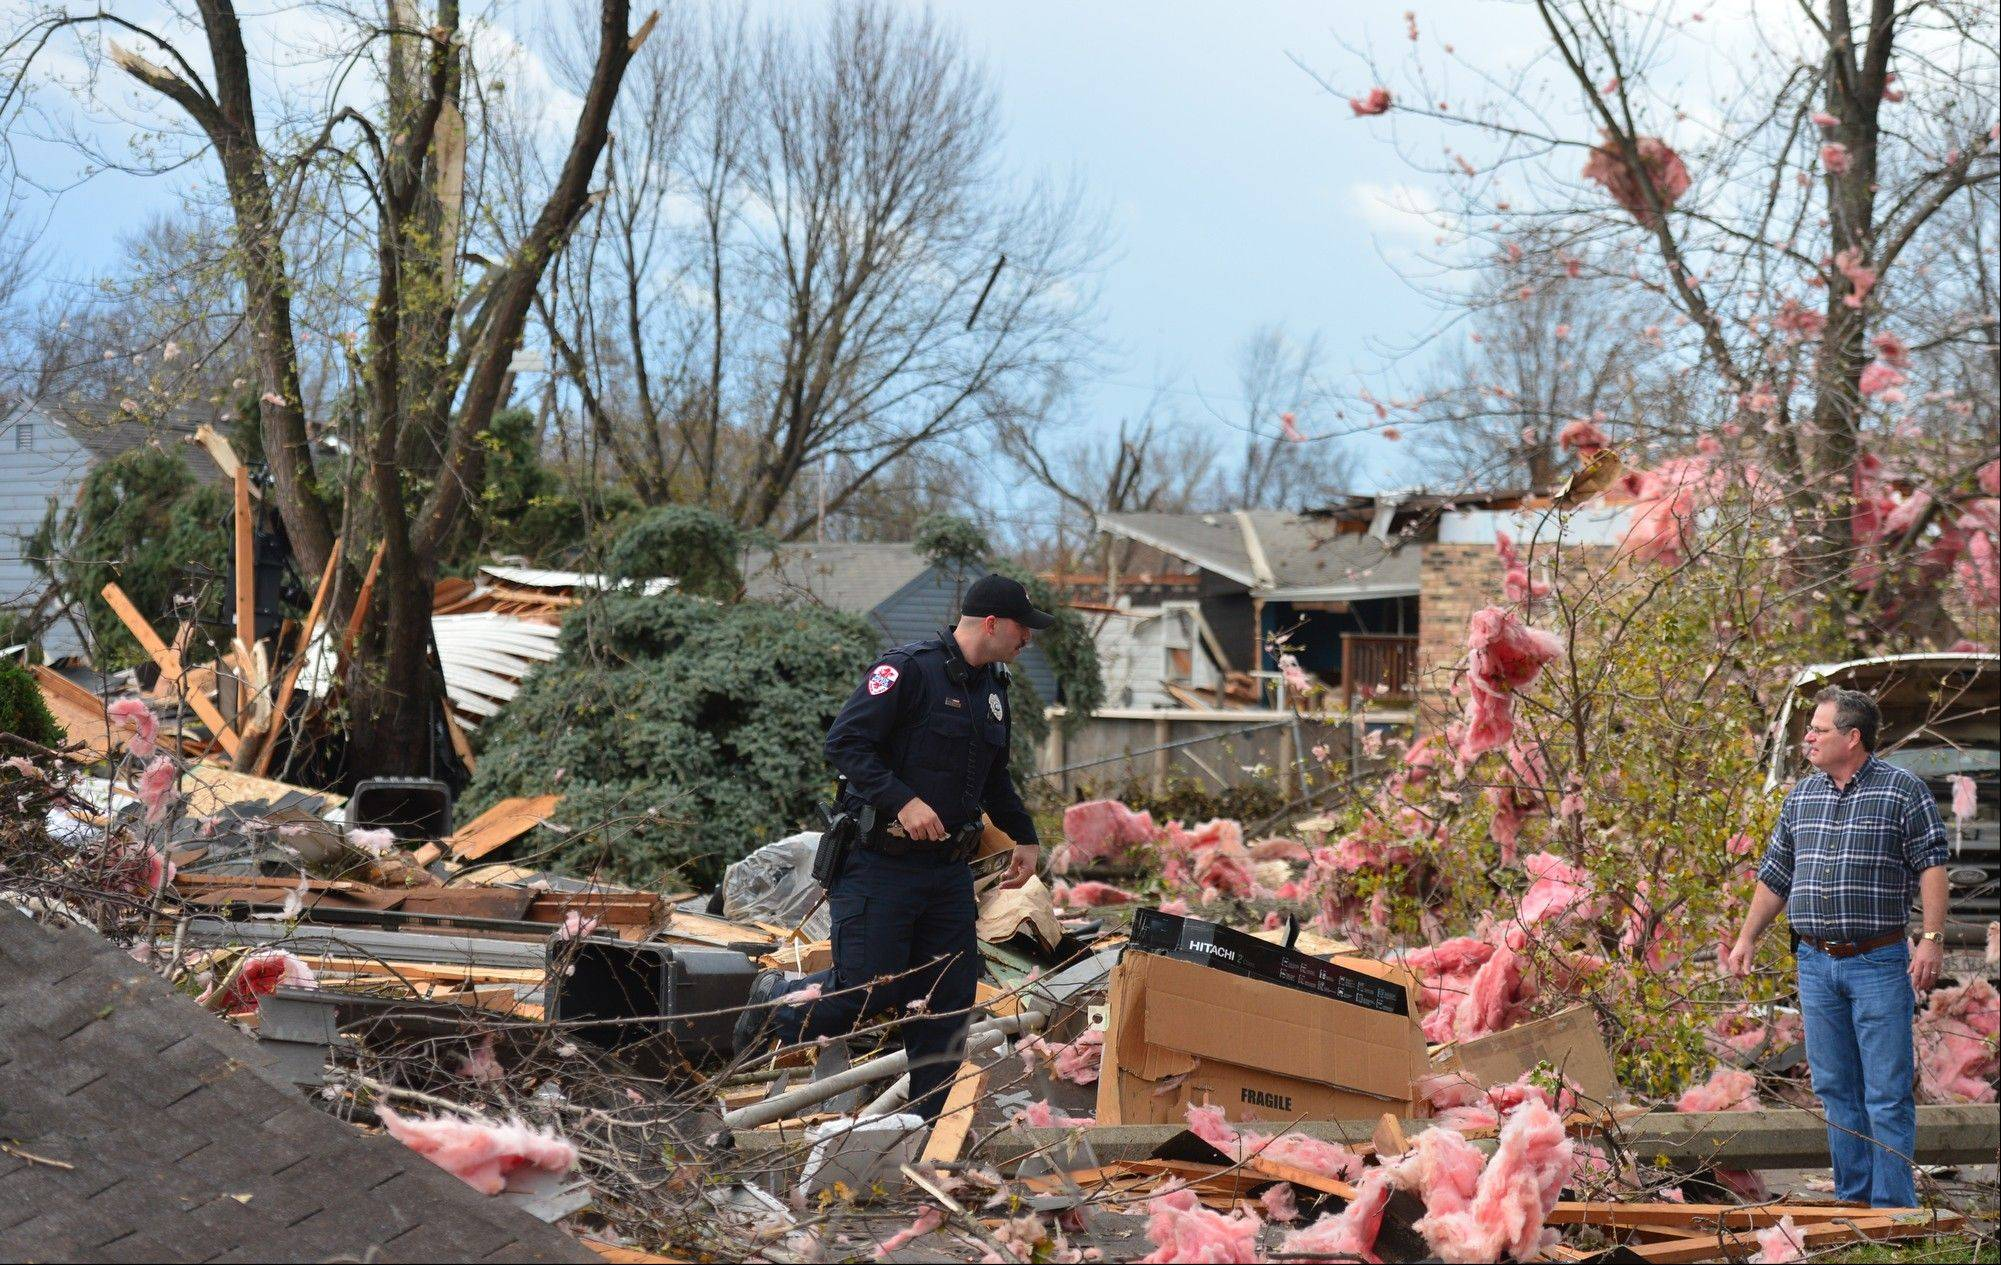 A tornado left a path of devastation through the north end of Pekin, Il.,Sunday, Nov. 17, 2013. Intense thunderstorms and tornadoes swept across the Midwest on Sunday, causing extensive damage in several central Illinois communities while sending people to their basements for shelter.